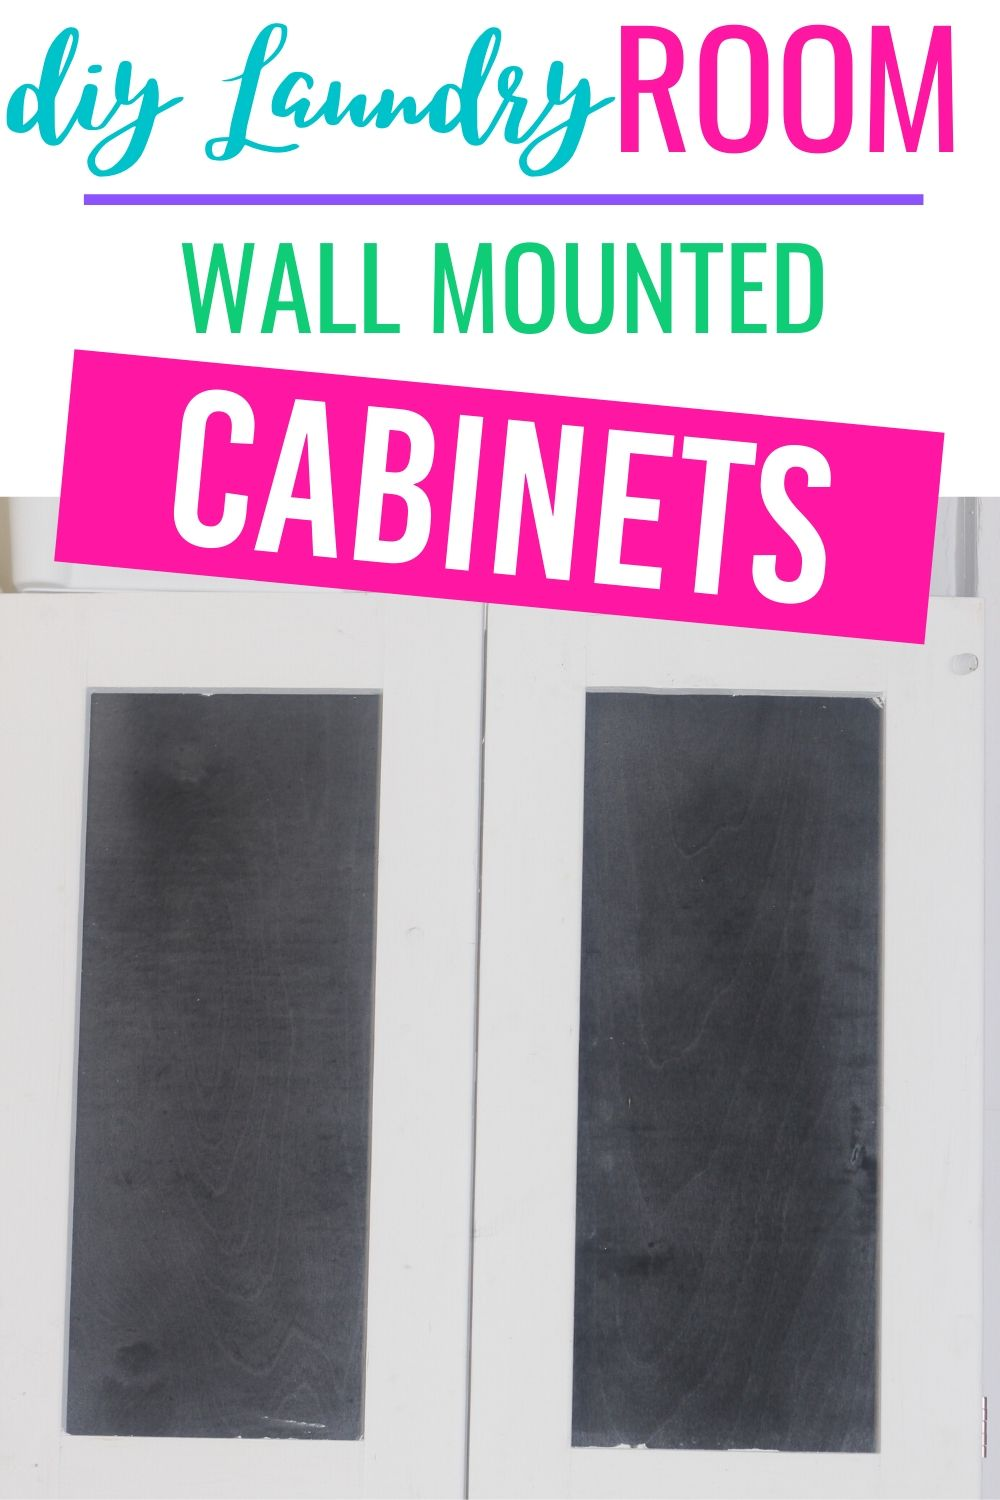 Perfect beginning woodworking project. Organize your laundry room with these diy laundry room wall mounted shelves with chalkboard paint doors. #diy #diyproject #woodworking #rustic #laundryroom #storage via @homebyjenn